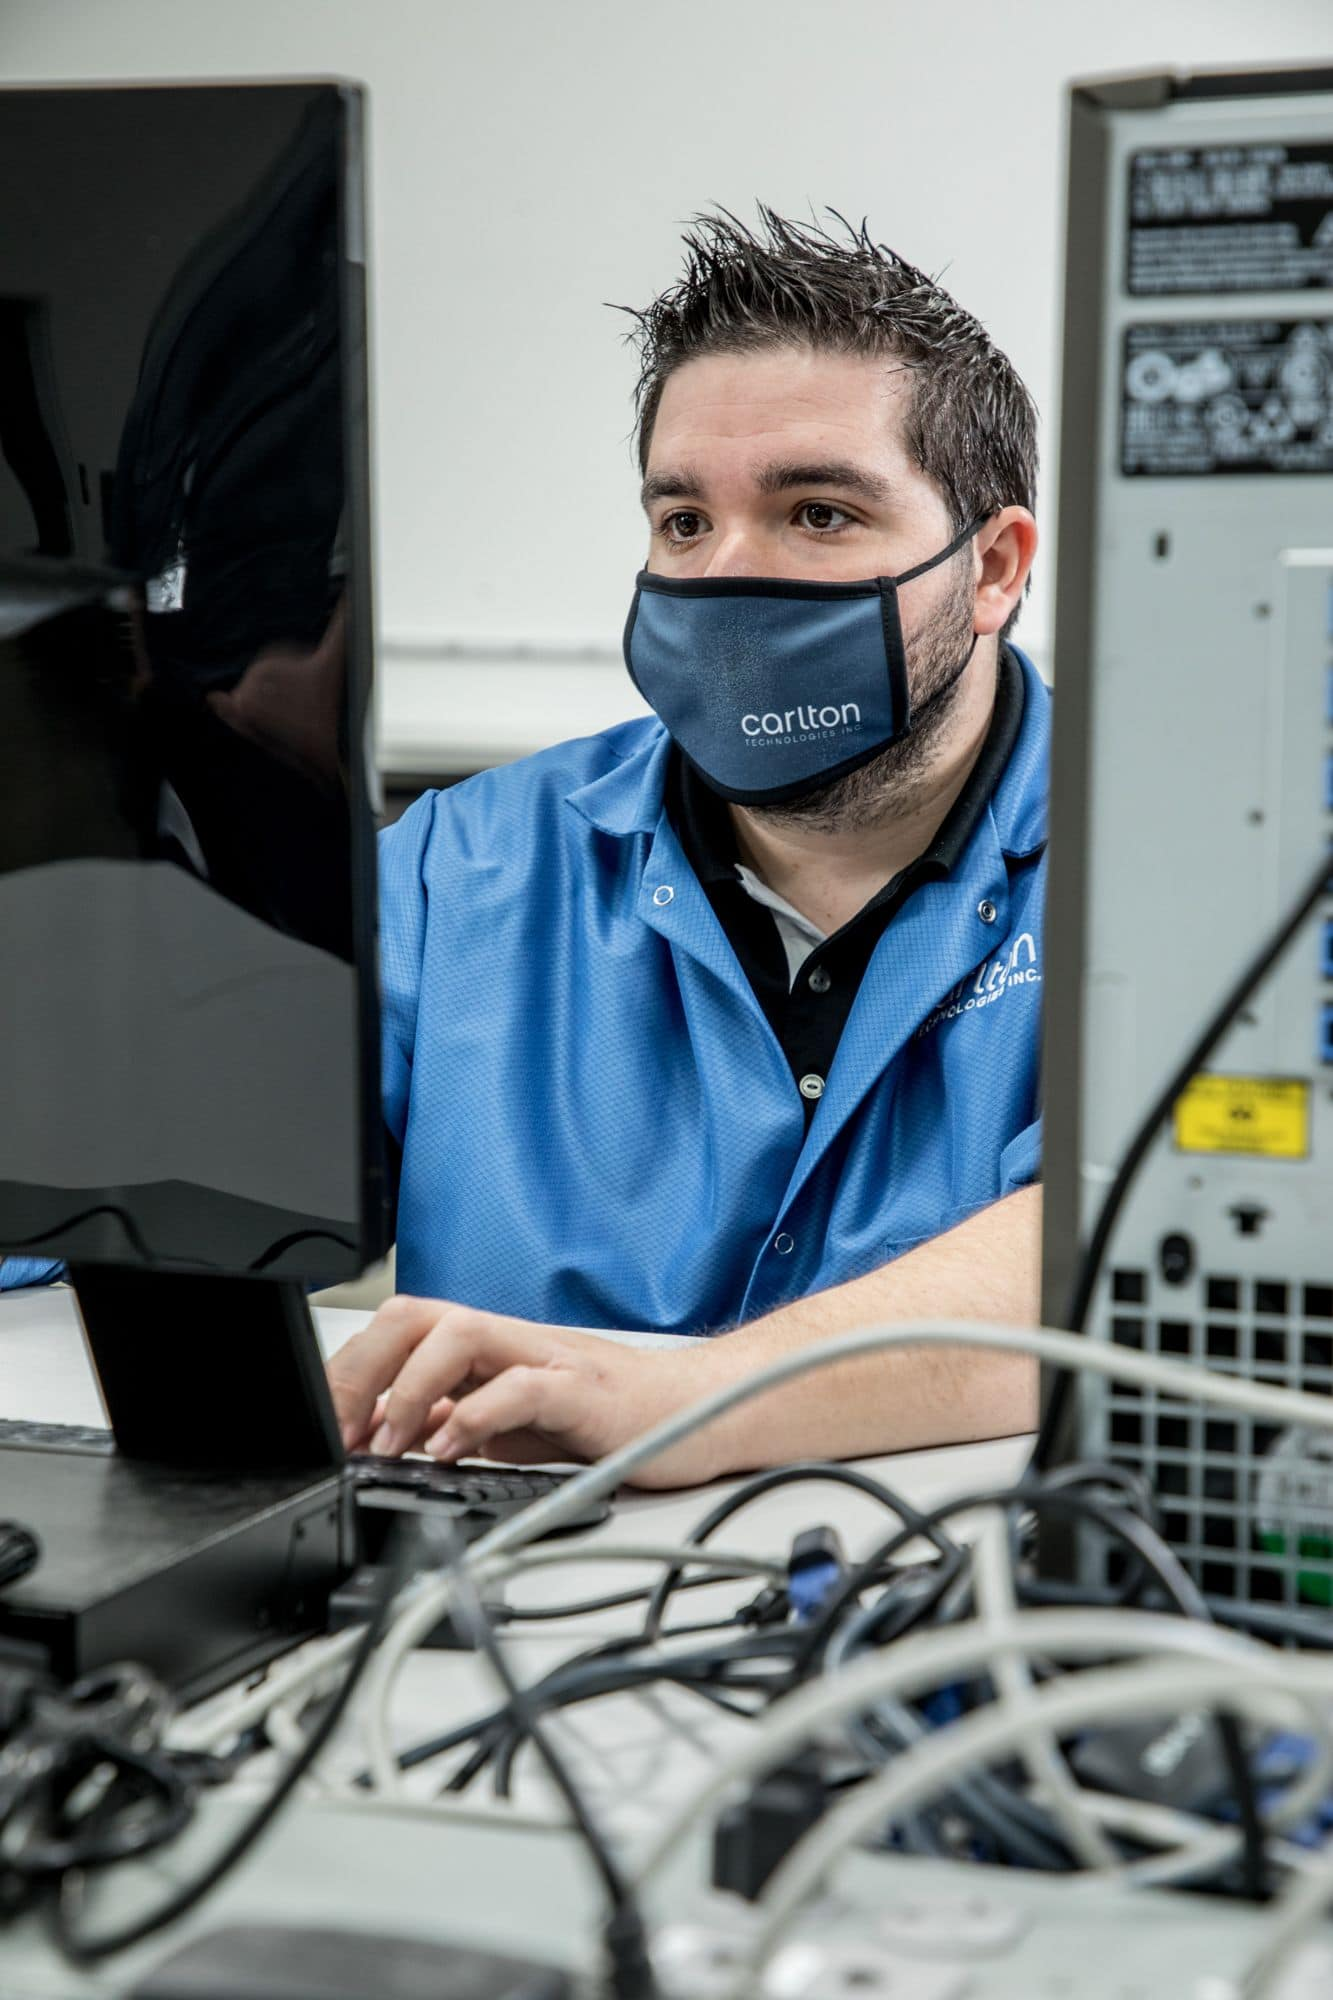 technology troubleshooting field service technician working on a pc